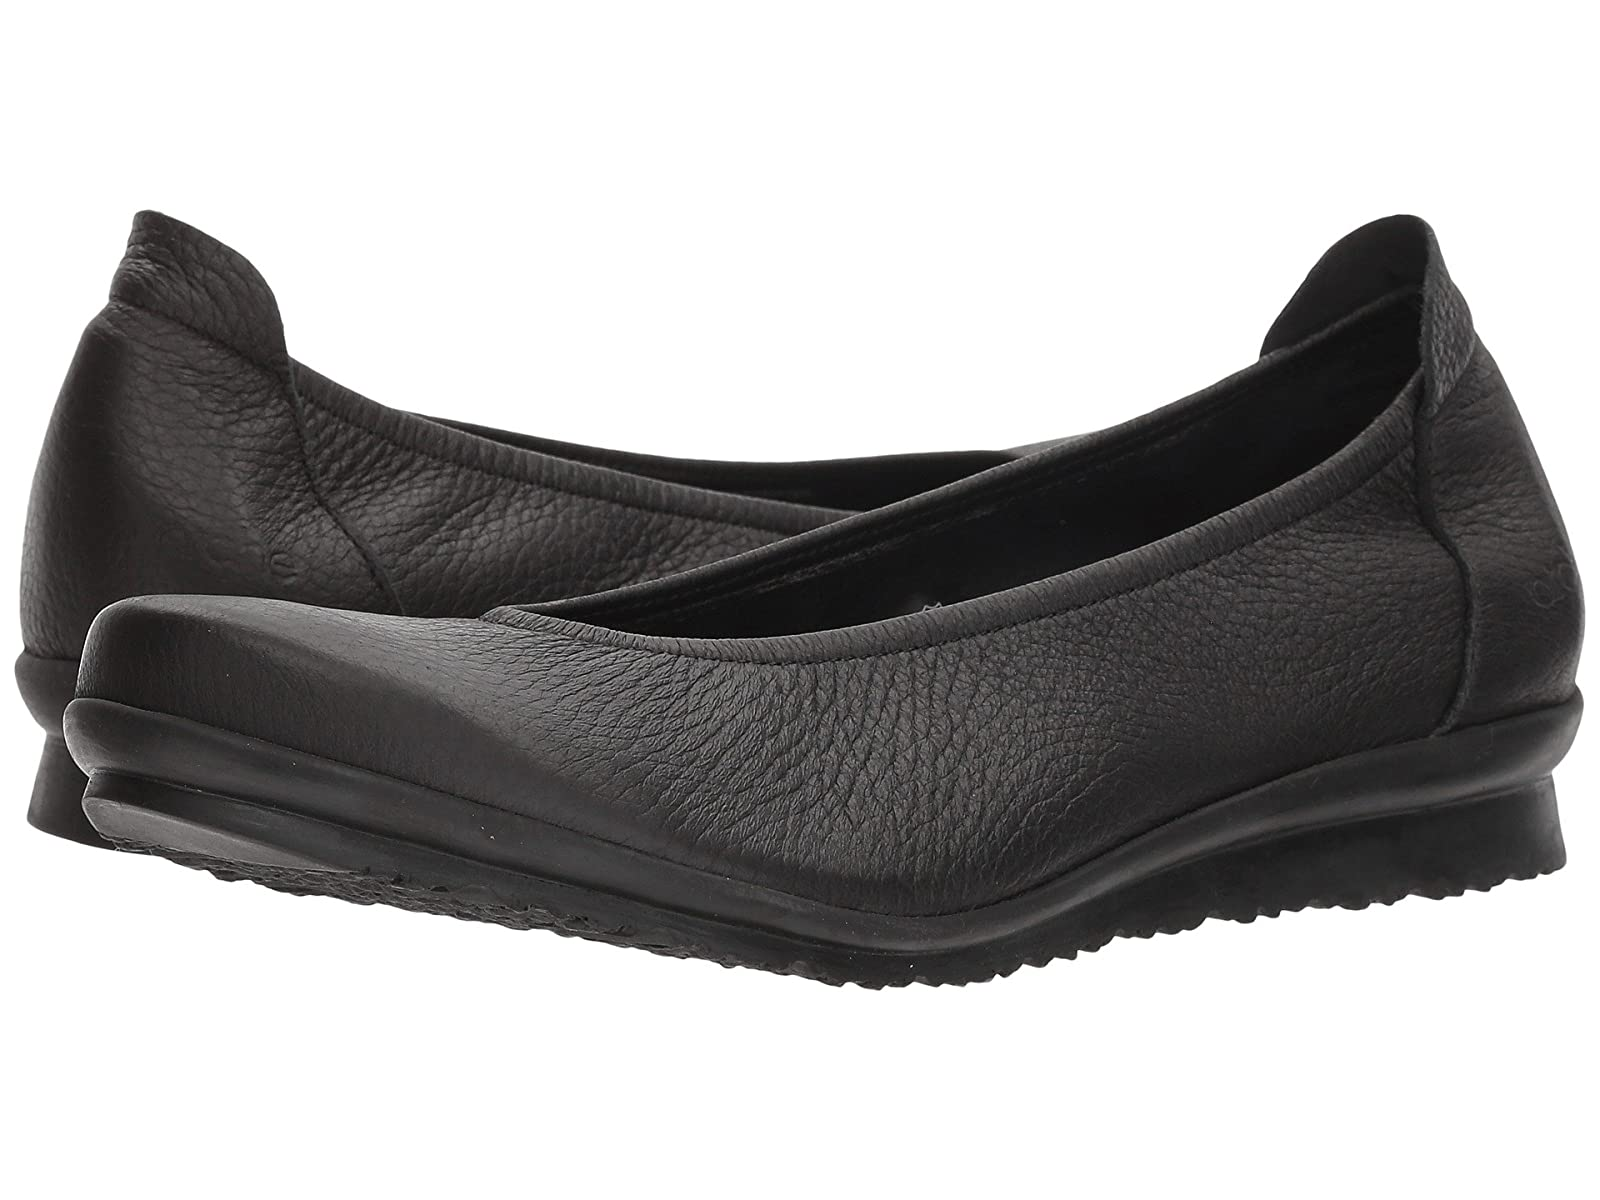 Arche BaryamAtmospheric grades have affordable shoes